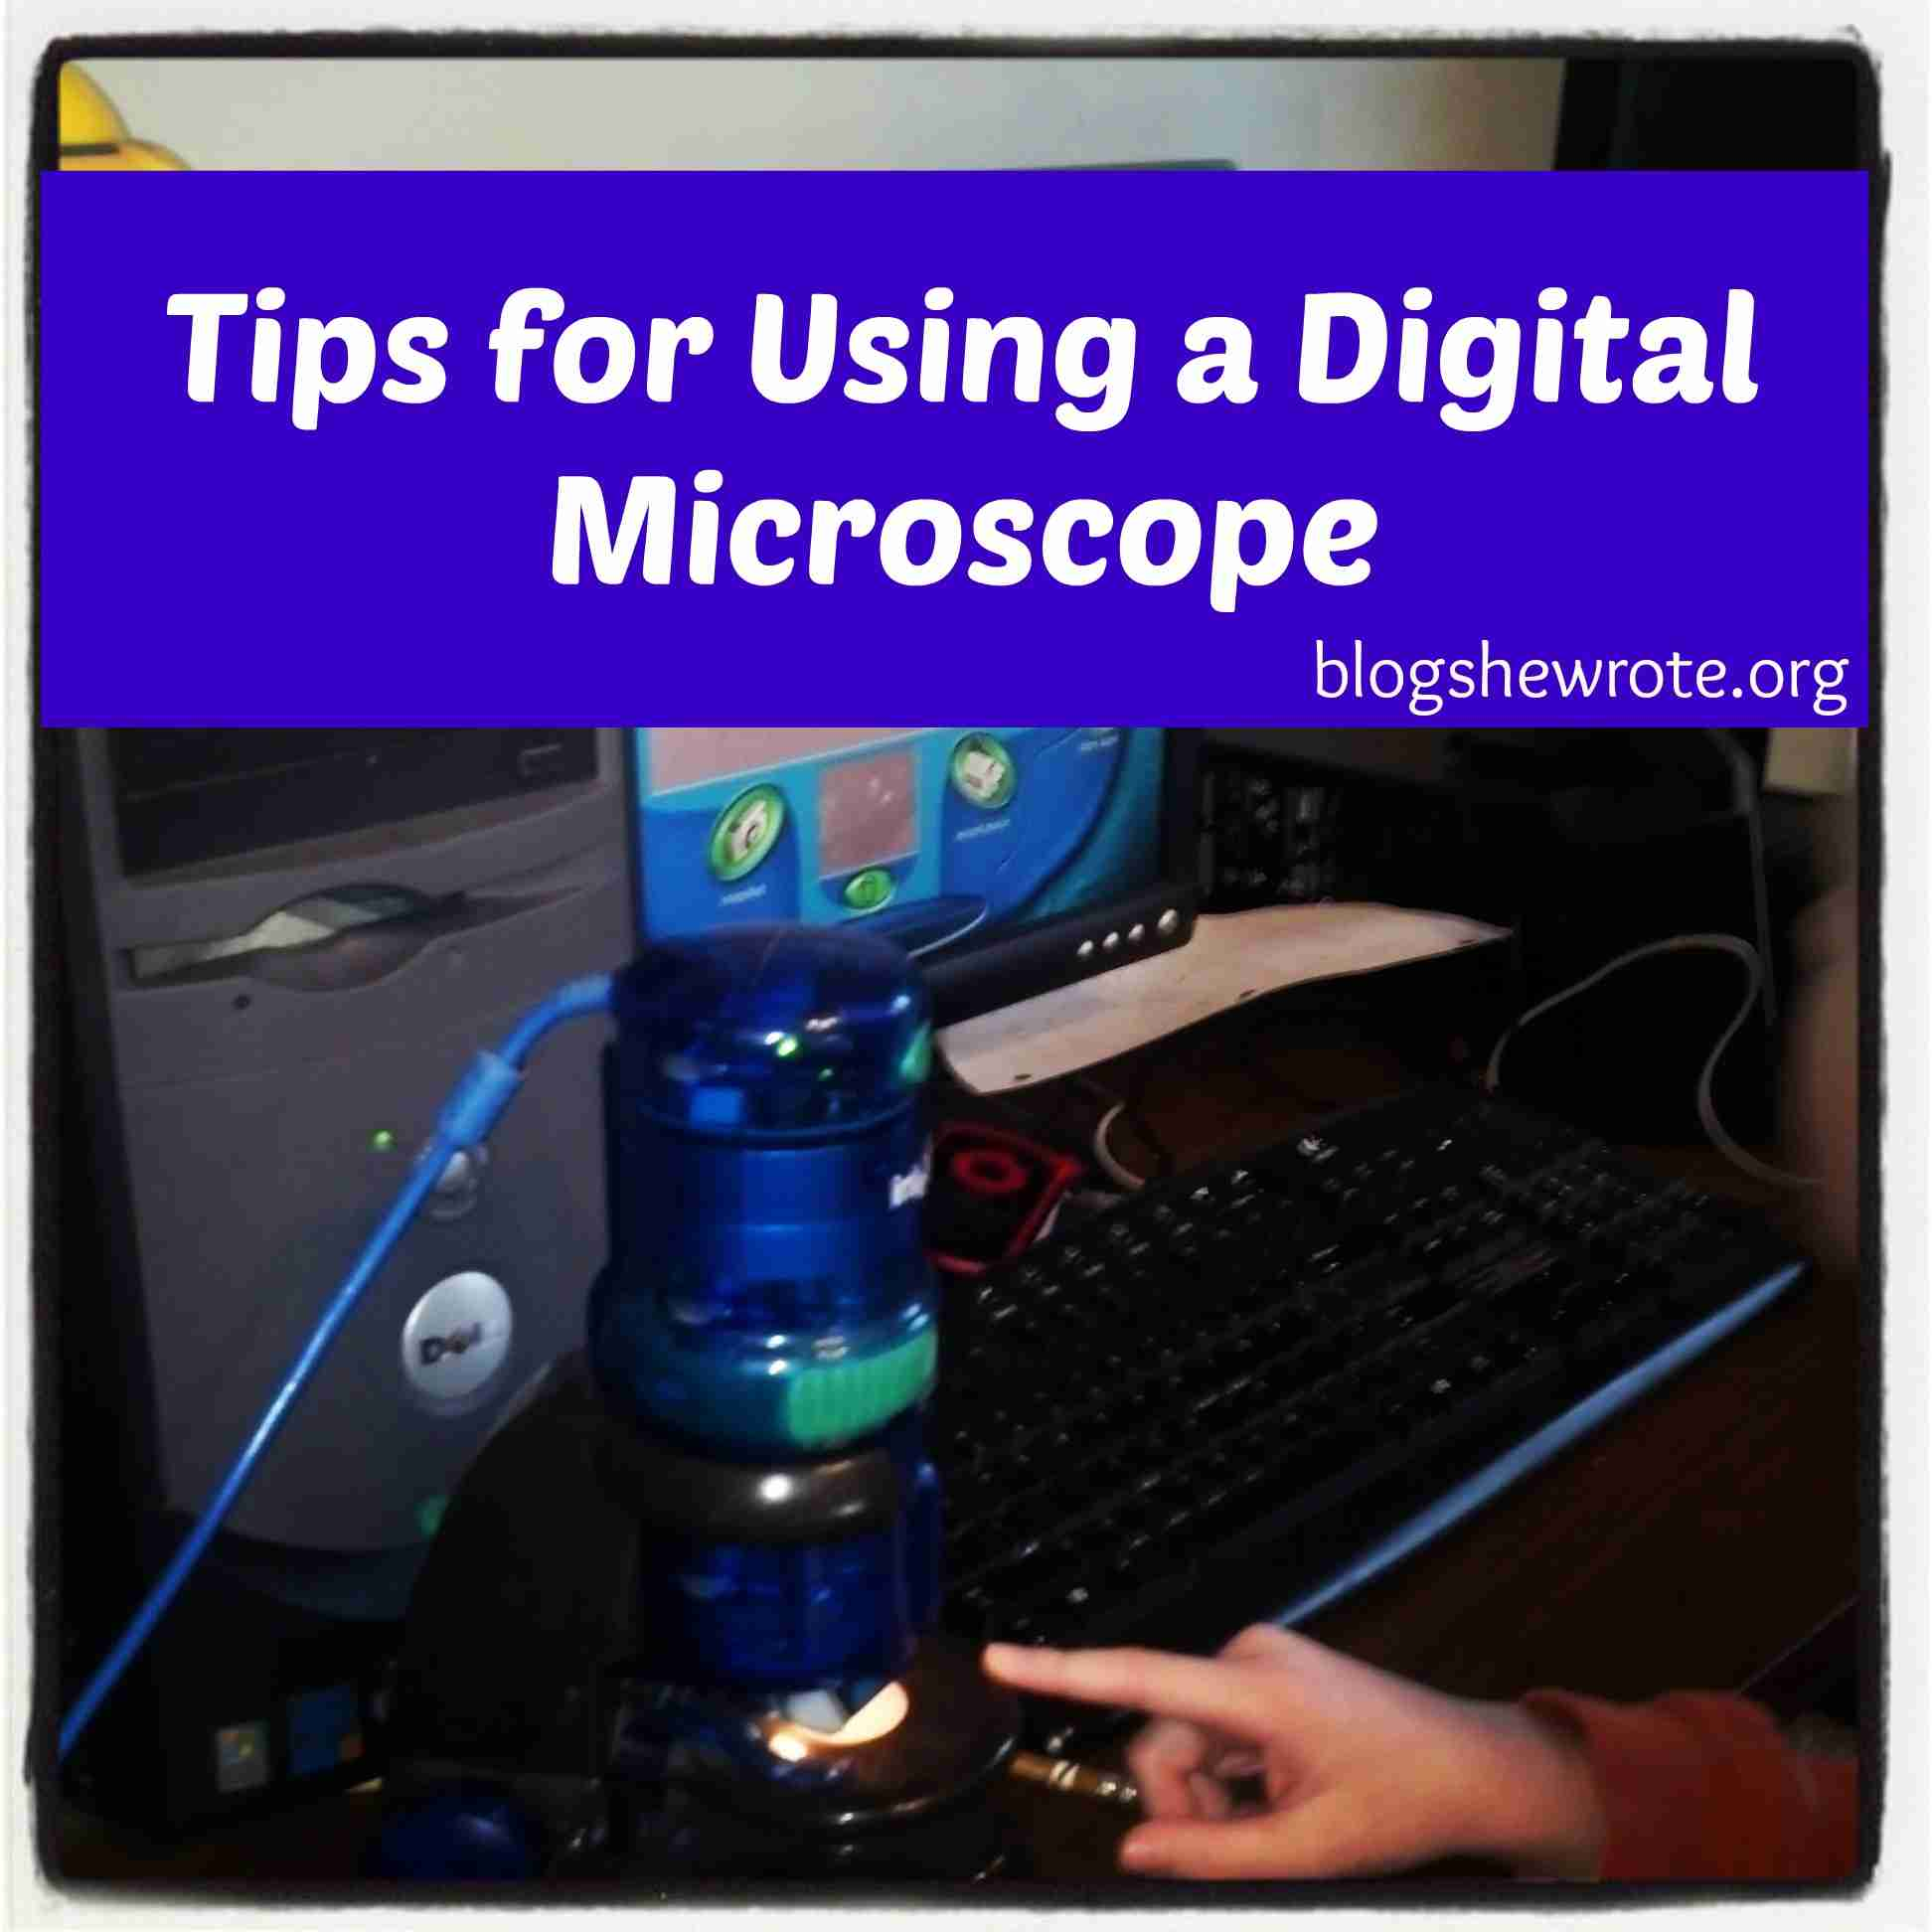 Blogs, She Wrote: Tips for Using a Digital Microscope